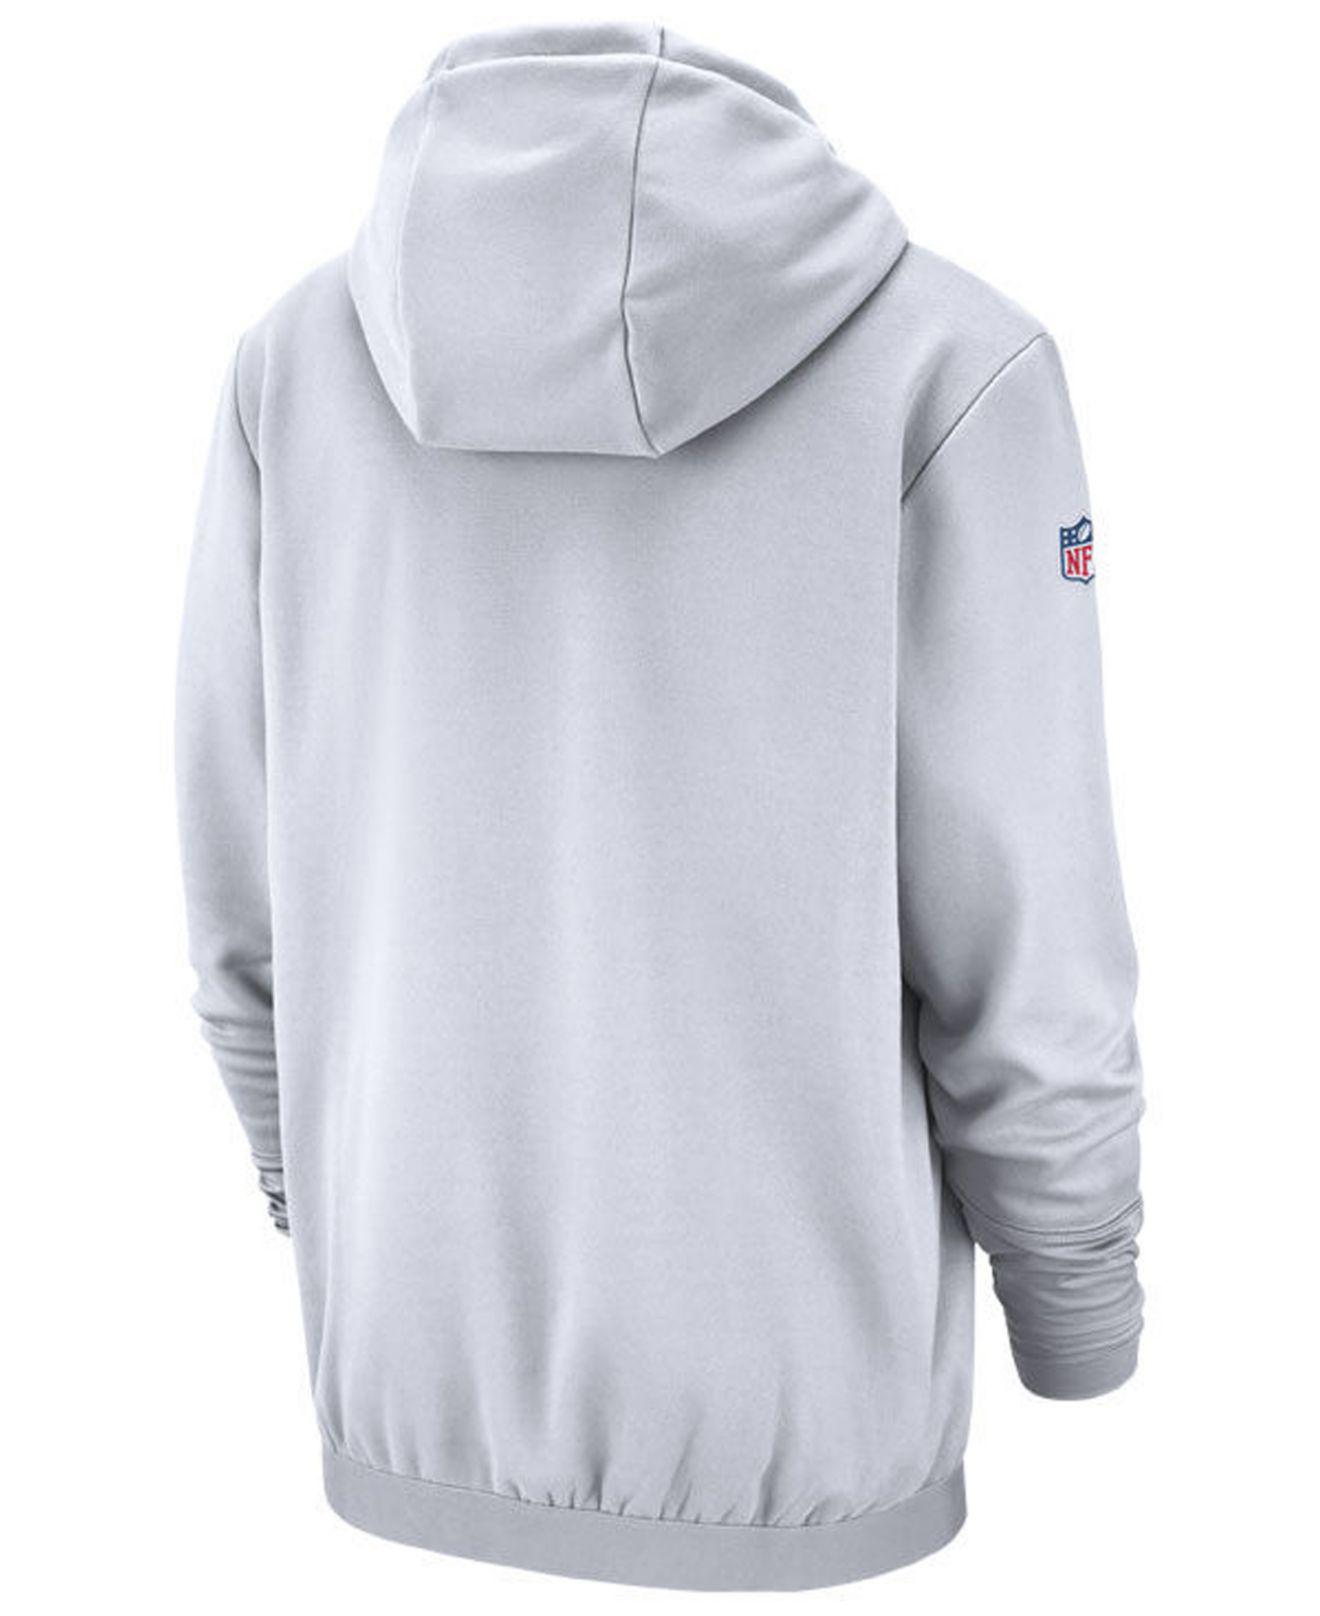 4d4aec8ca Lyst - Nike Green Bay Packers Sideline Player Local Therma Hoodie in White  for Men